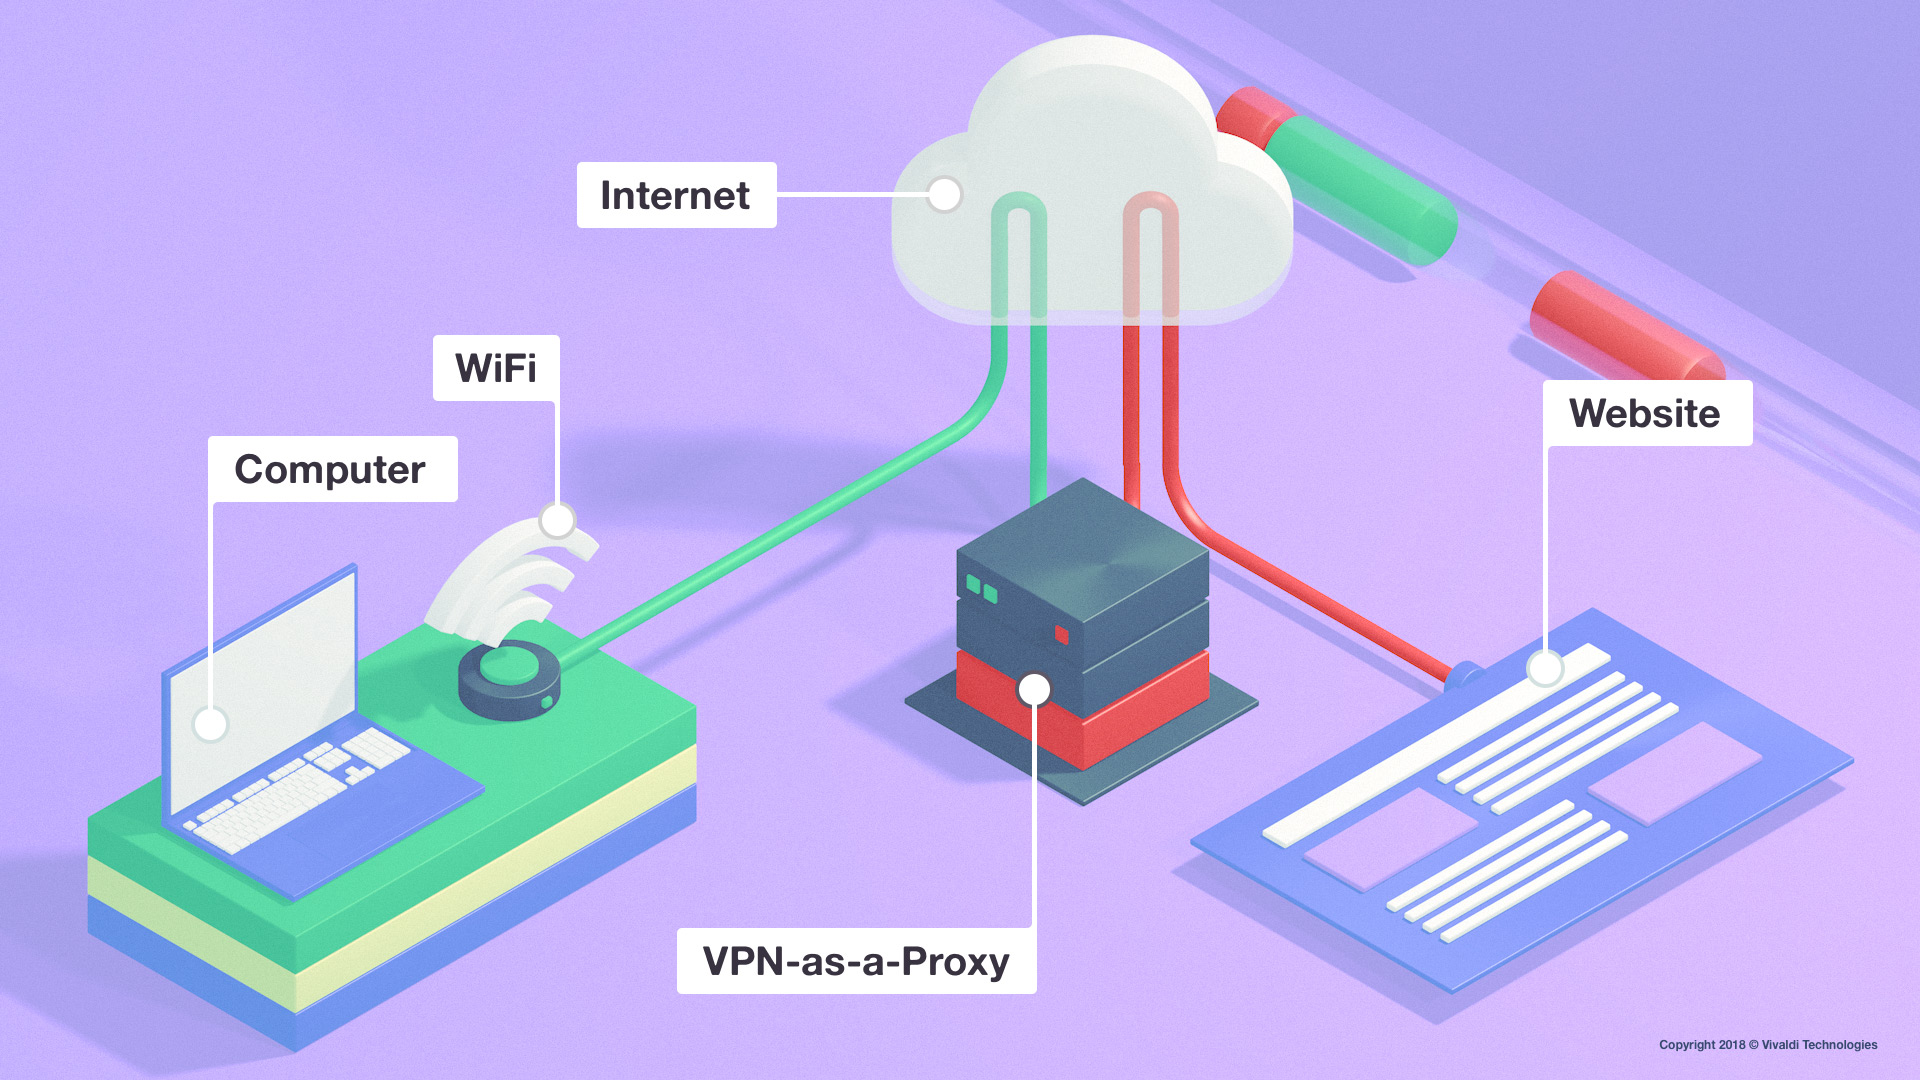 VPNs, proxies and privacy | Vivaldi Browser